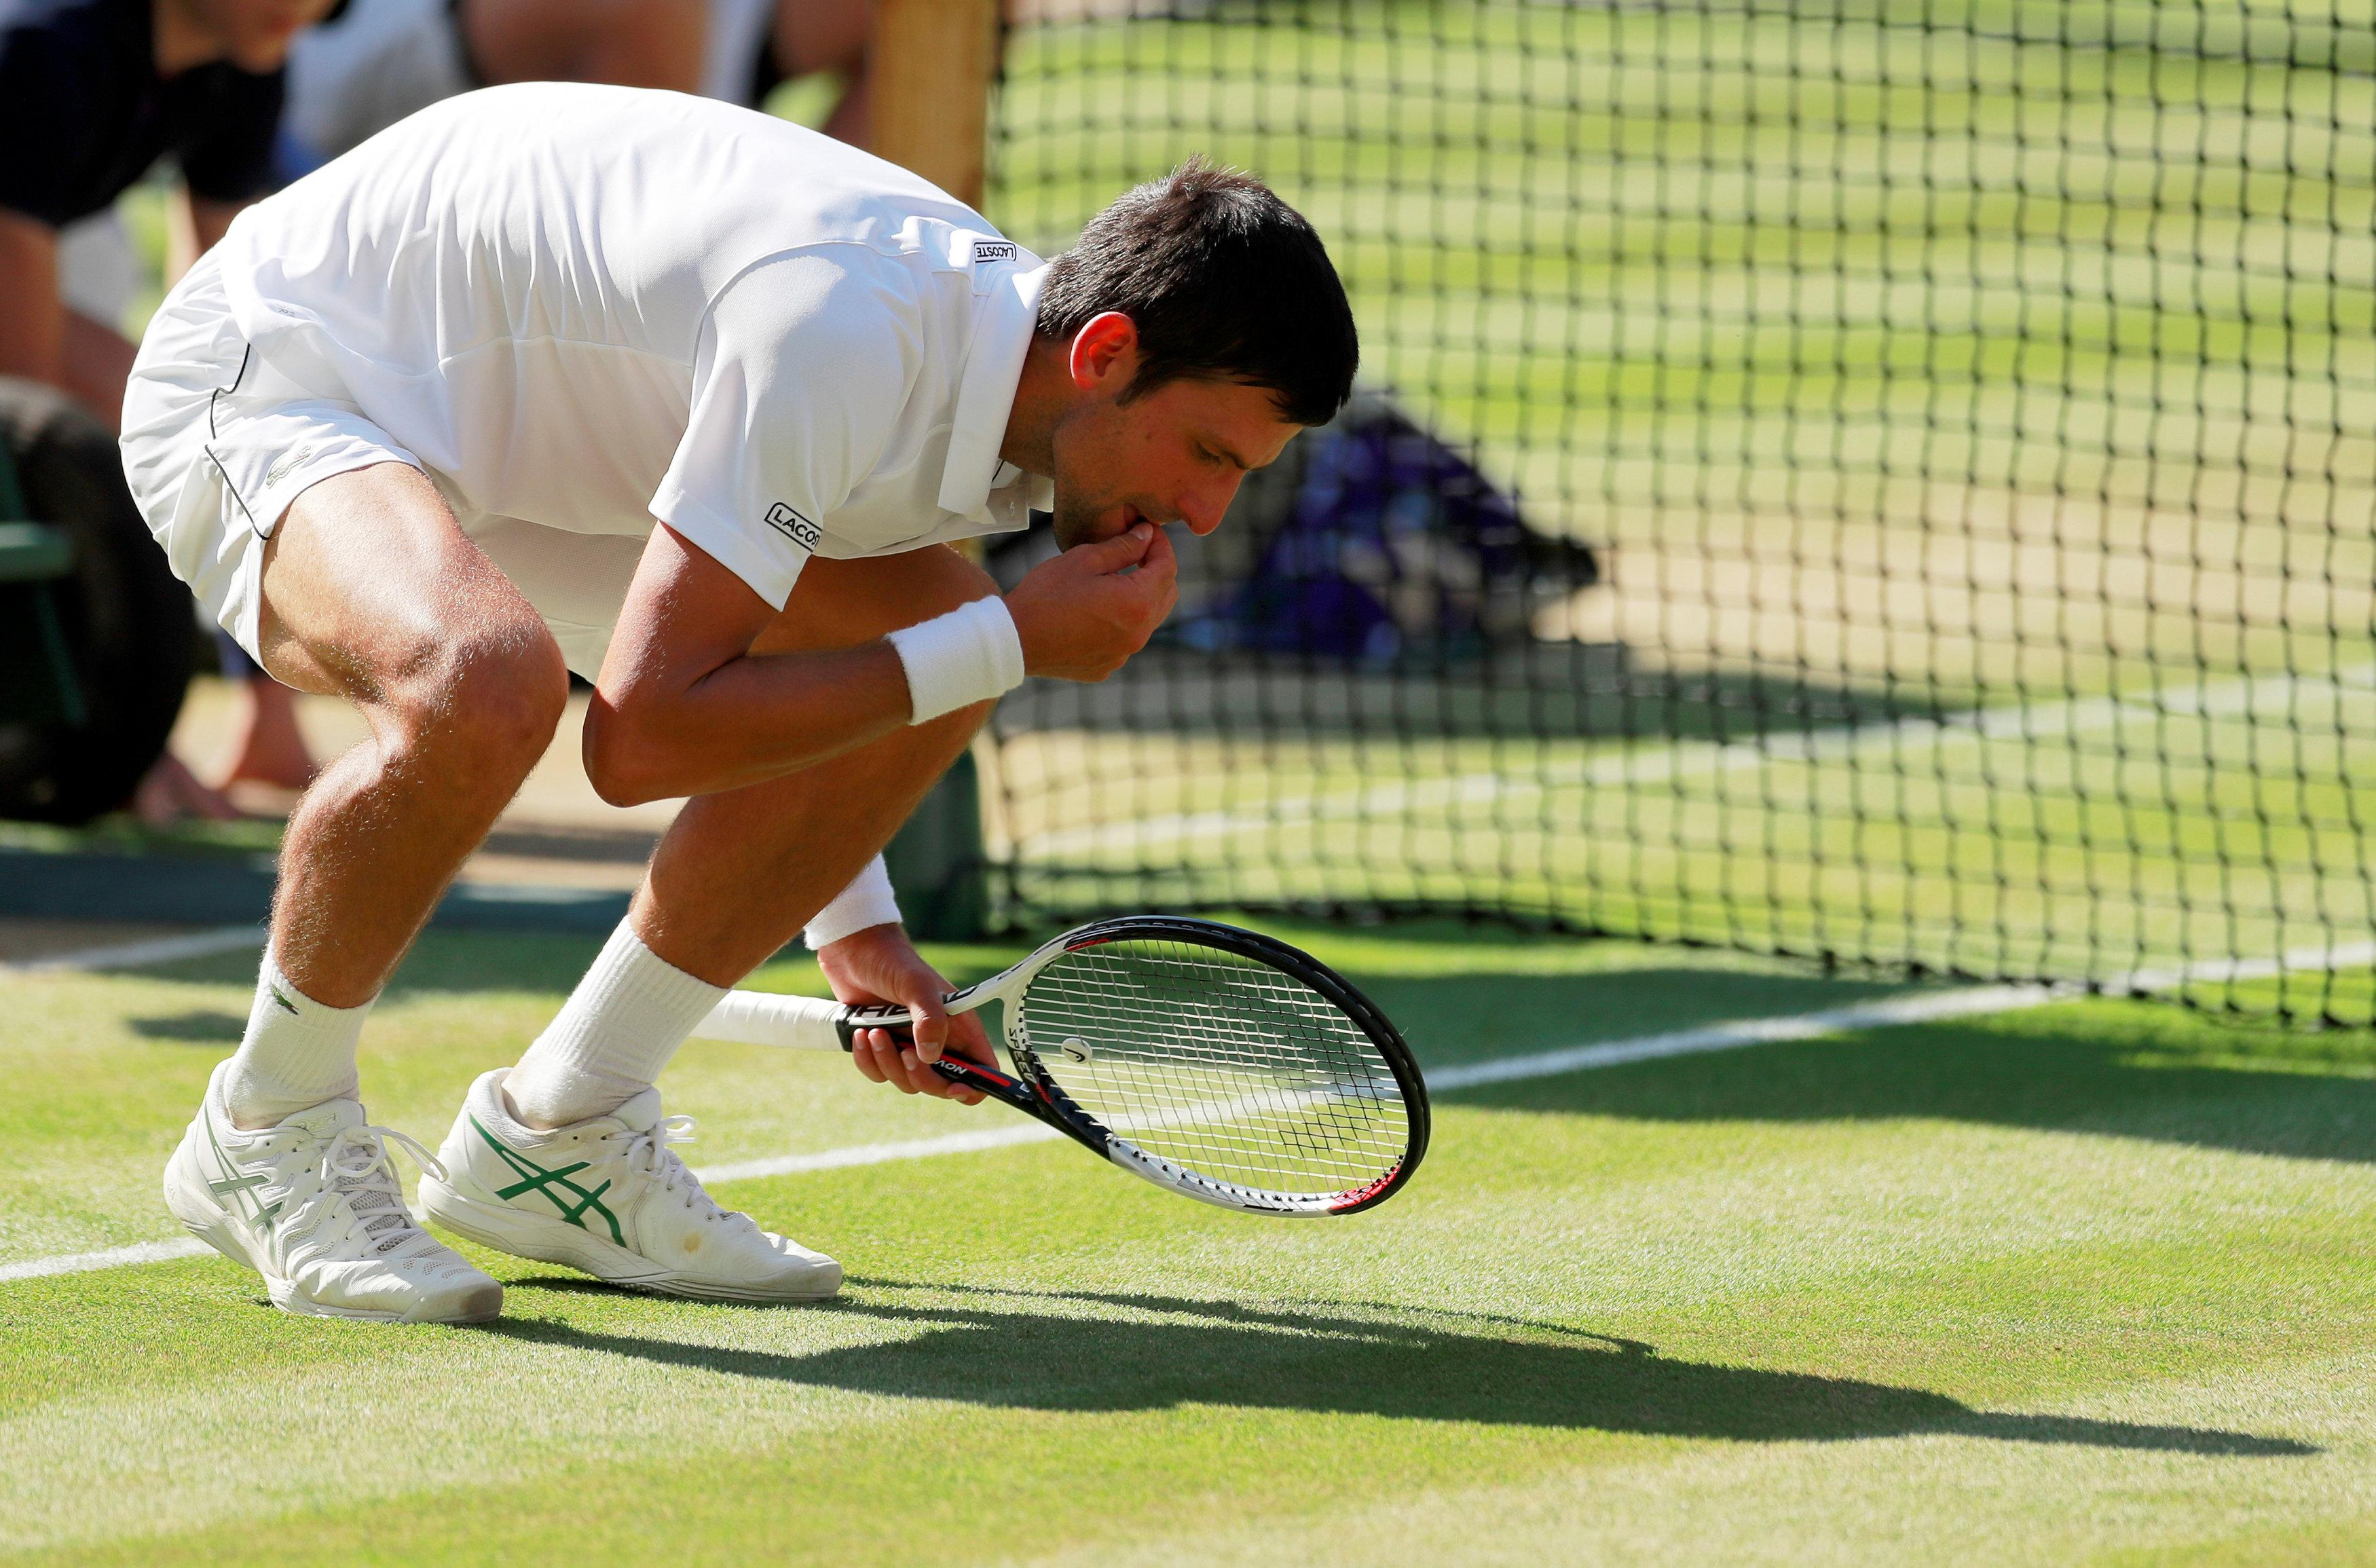 As is his tradition, Djokovic ate some of the Wimbledon grass